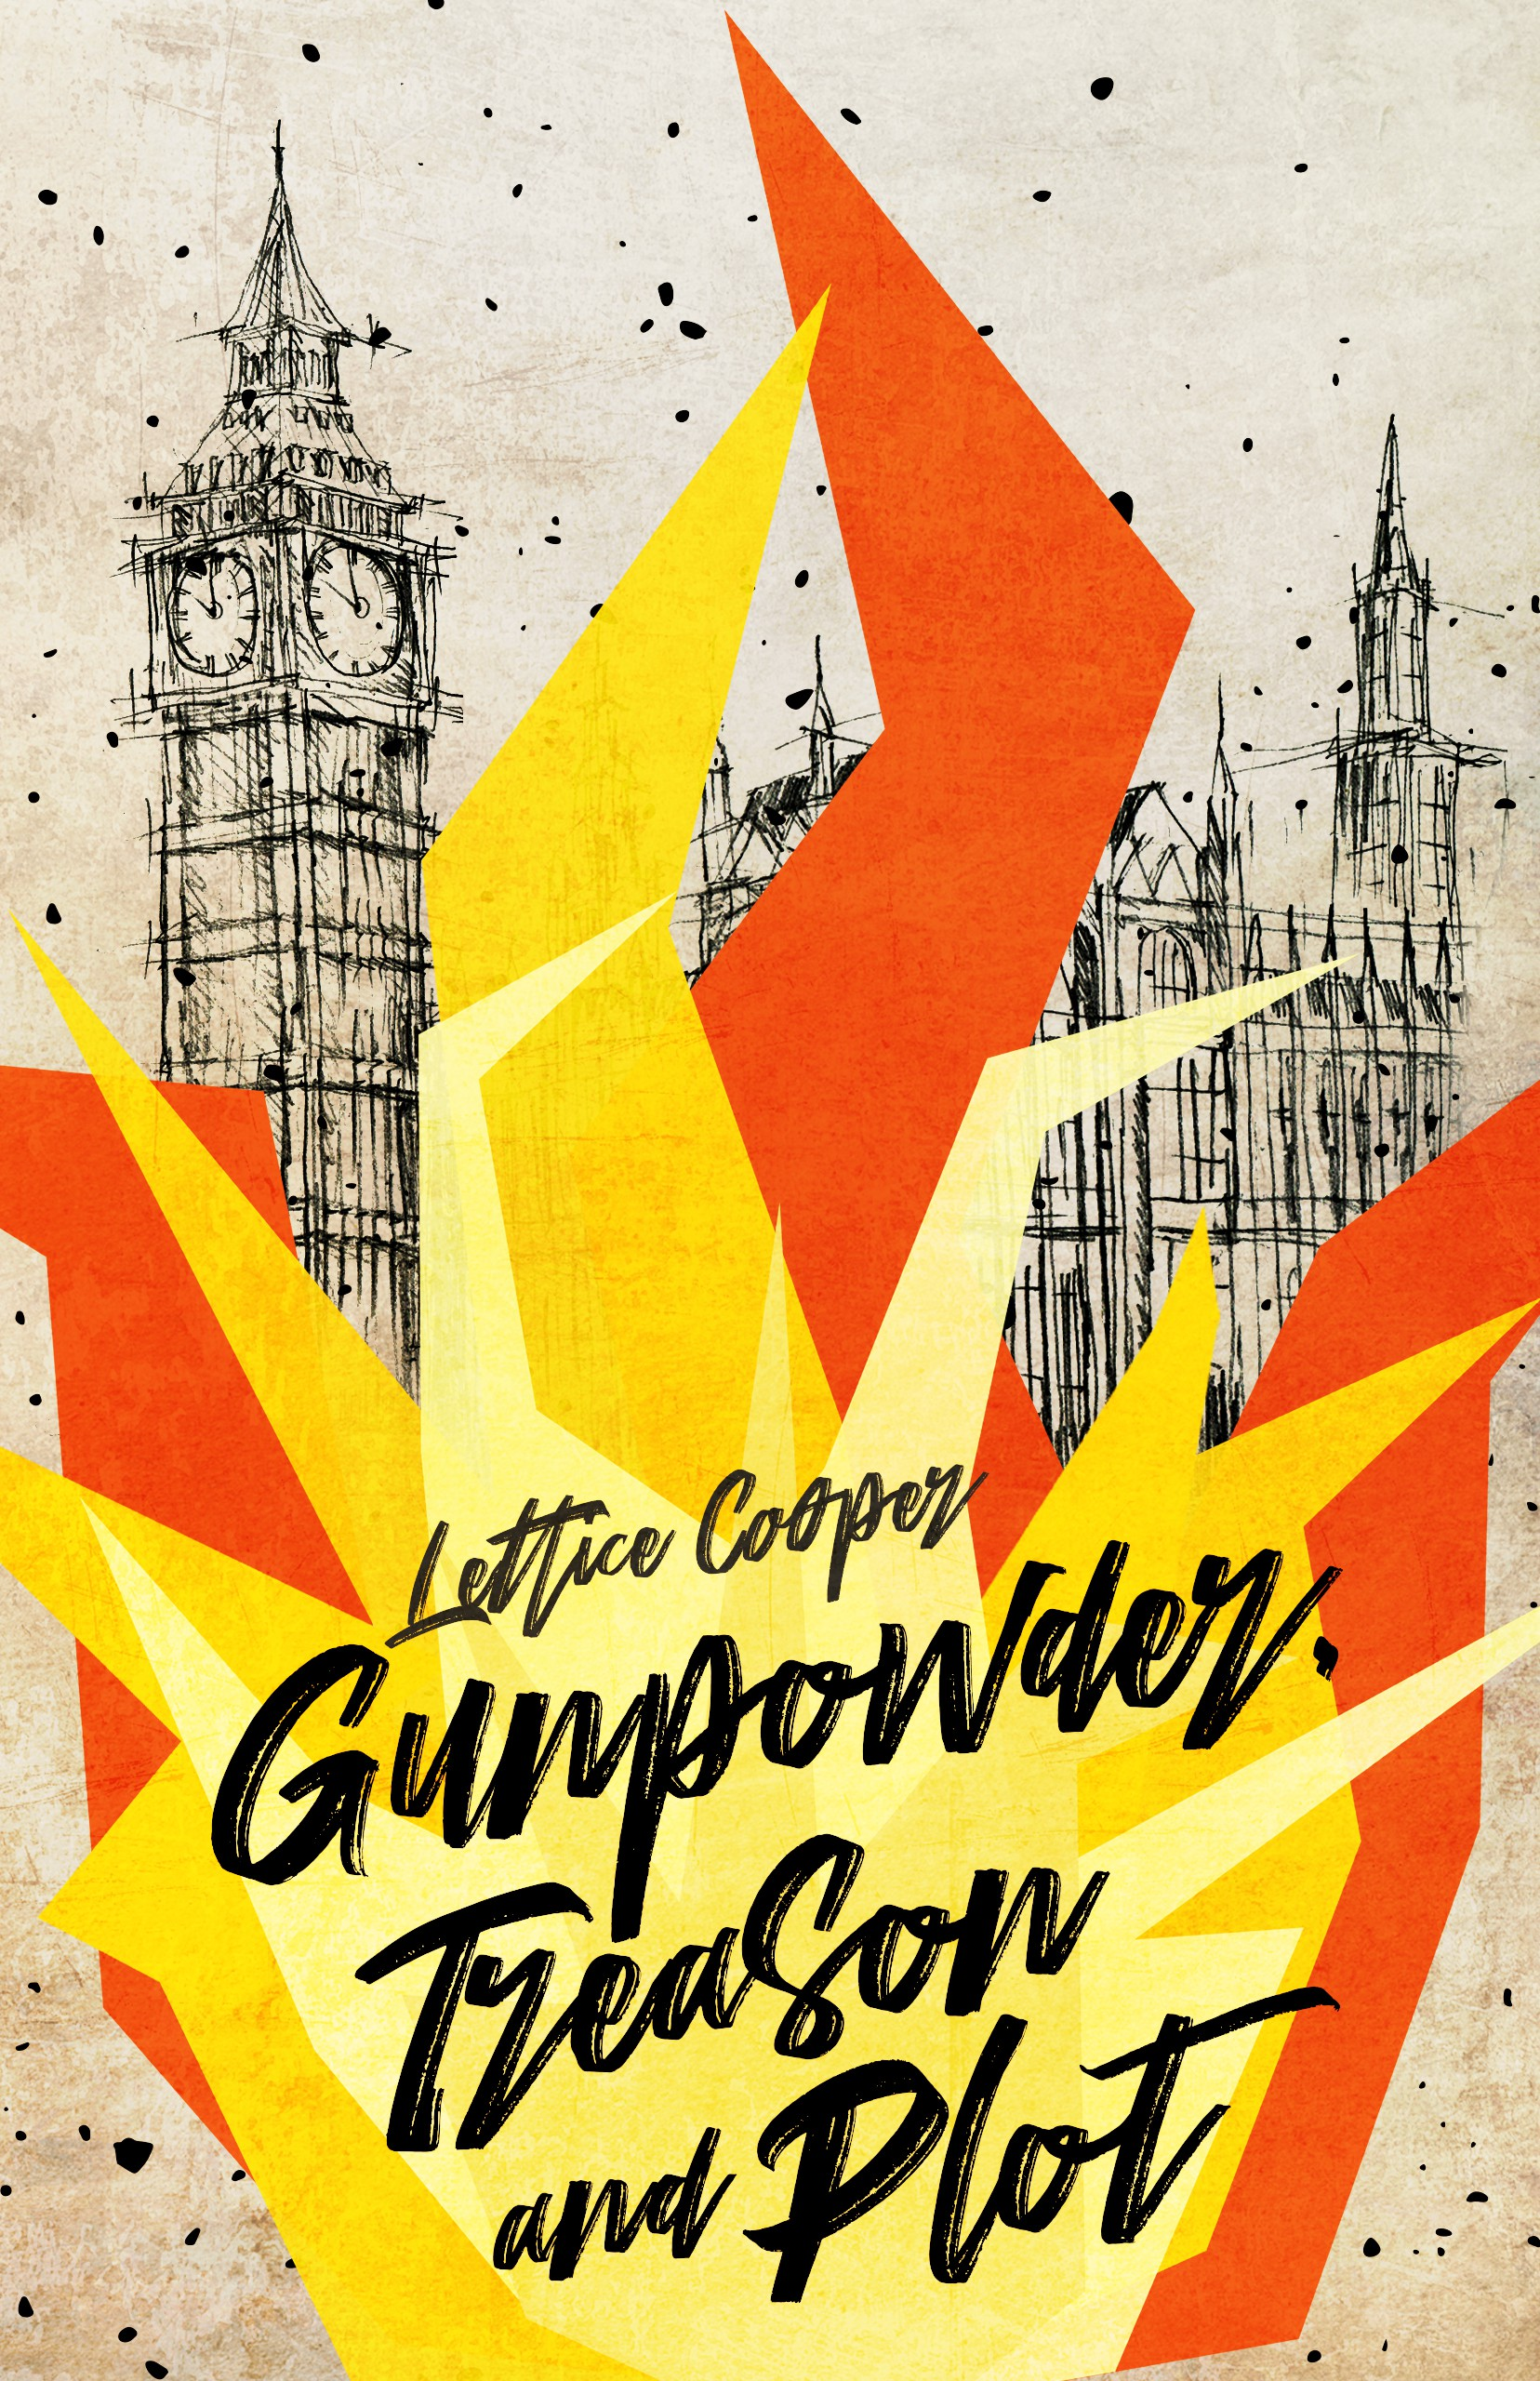 Gunpowder Plot / Guy Fawkes History Cover Required